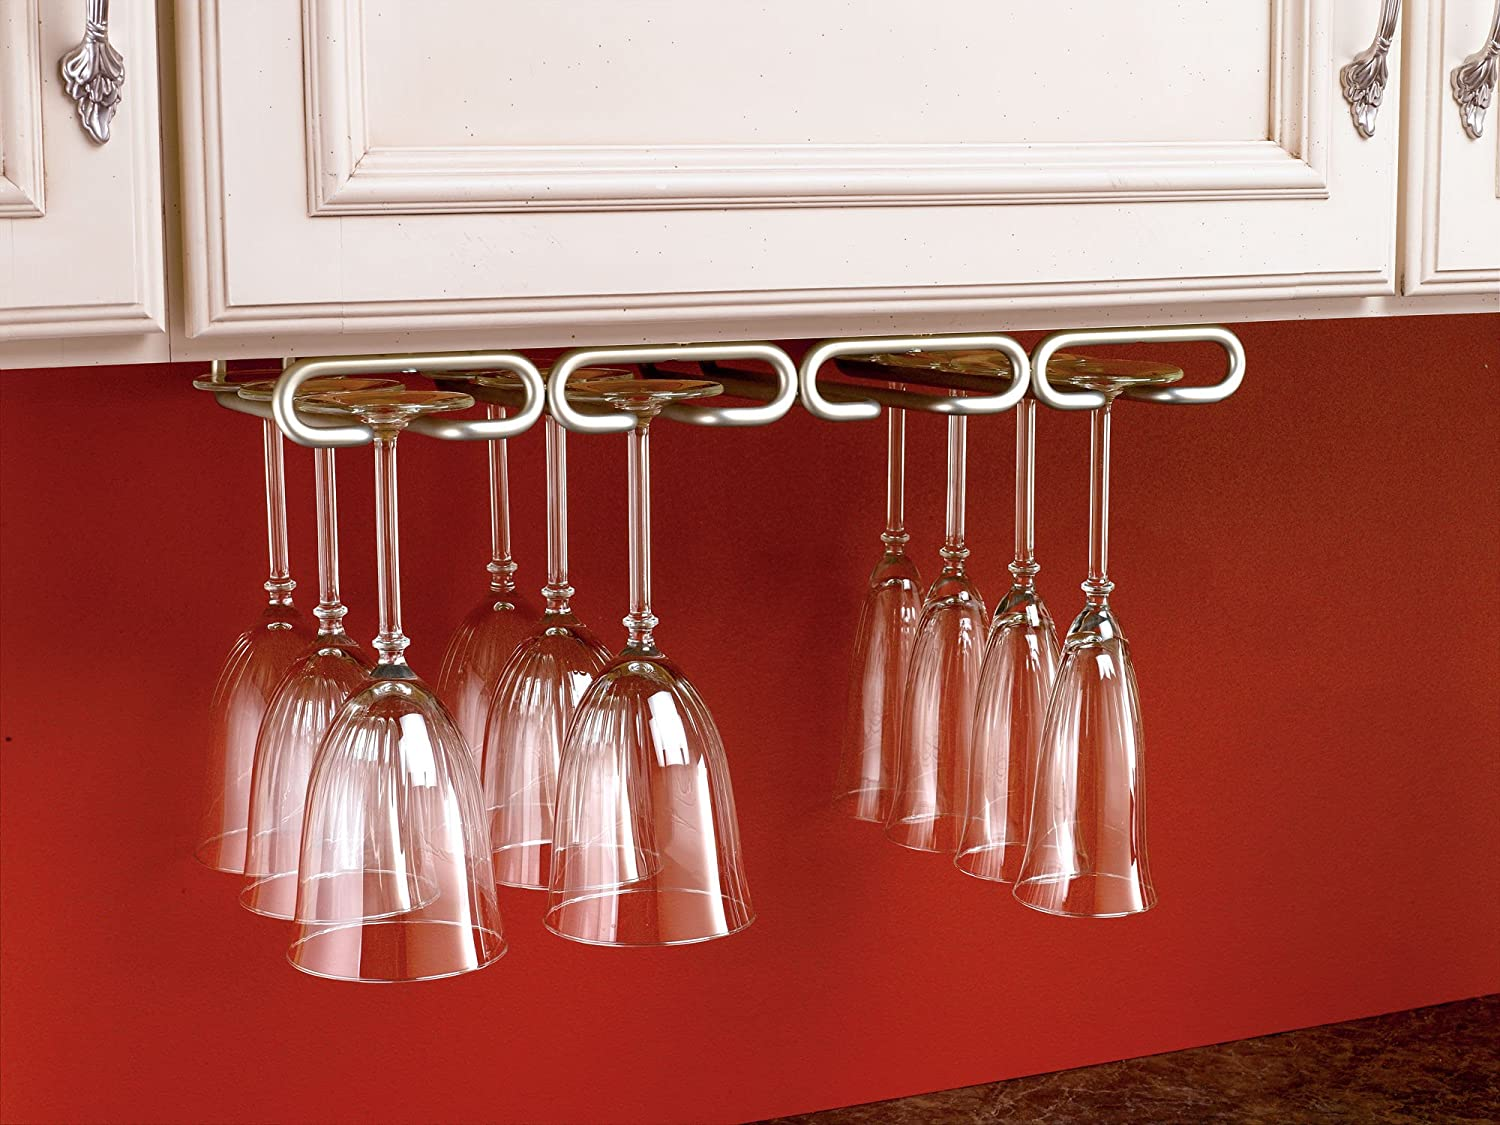 under cabinet wine glass rack. Amazon.com: Rev-A-Shelf 3450-11SN - 11 In. Satin Nickel Under Cabinet Quad Wine Glass Holder: Home \u0026 Kitchen Rack S